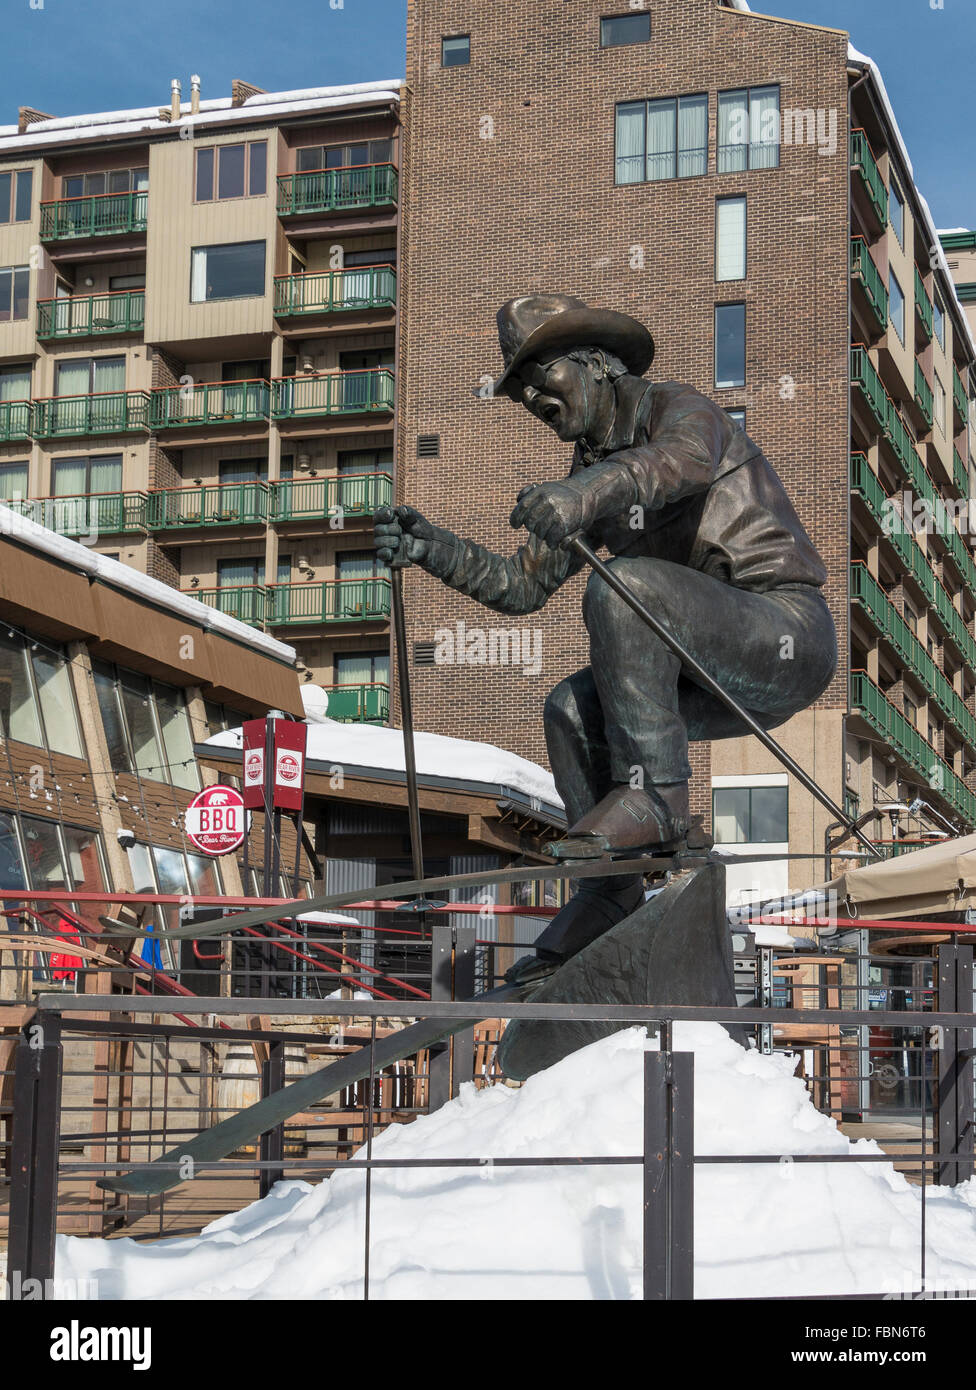 Billy Kidd statue, Steamboat Ski Resort, Steamboat Springs, Colorado. - Stock Image